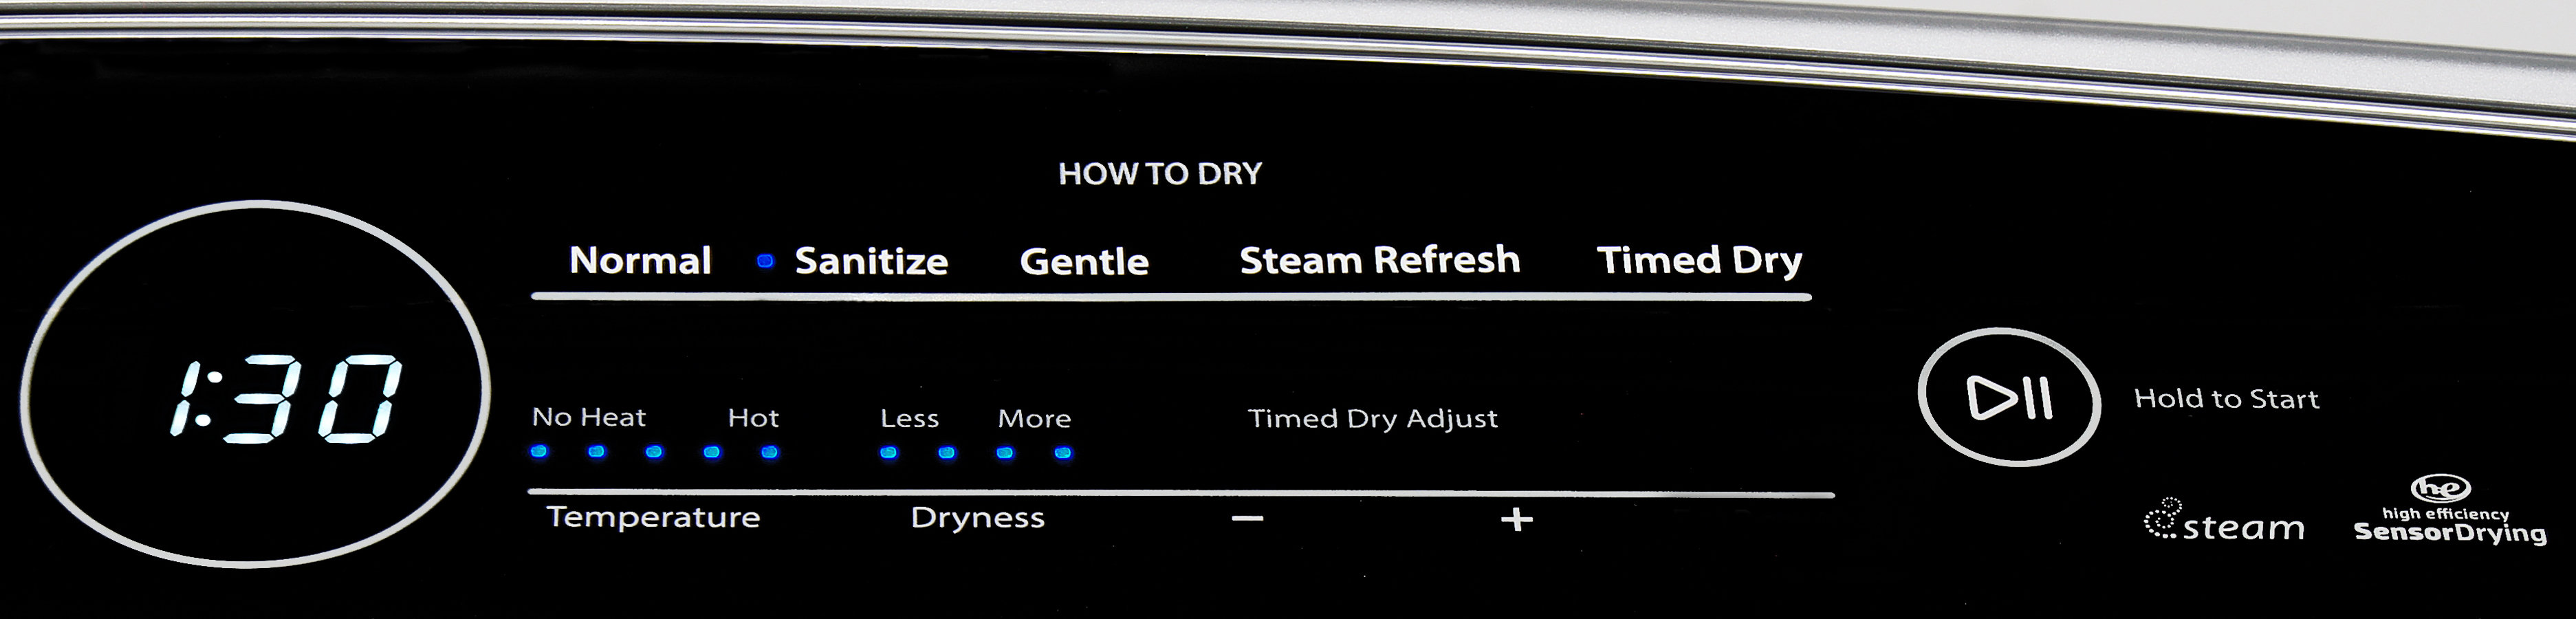 "The ""How To Dry"" section of the Whirlpool Cabrio WED7300DW's controls tries to help you intuit what heat level you should be using to dry your clothes."